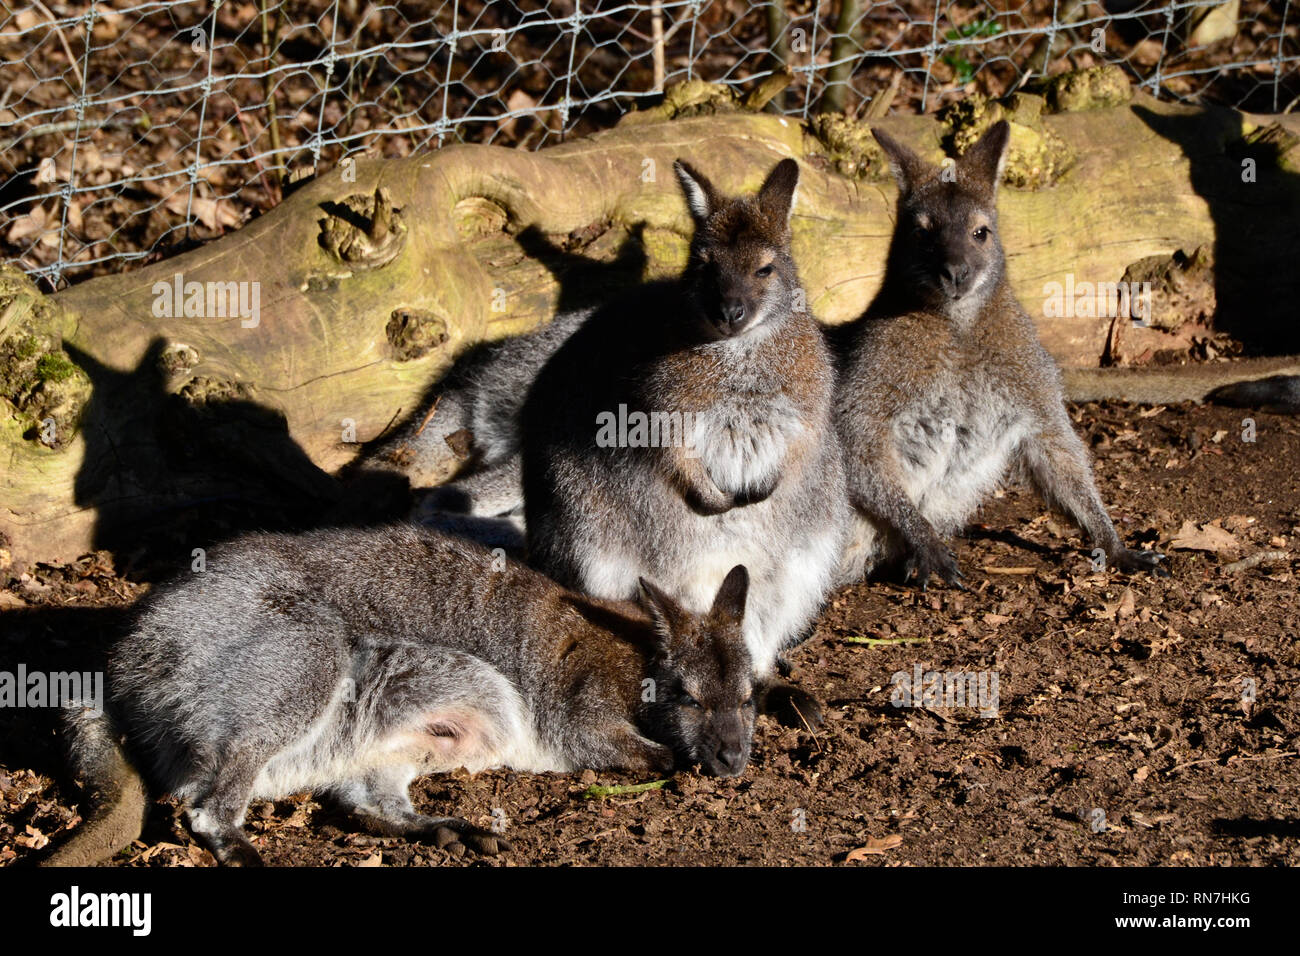 Wallaby Uk Wild High Resolution Stock Photography And Images Alamy